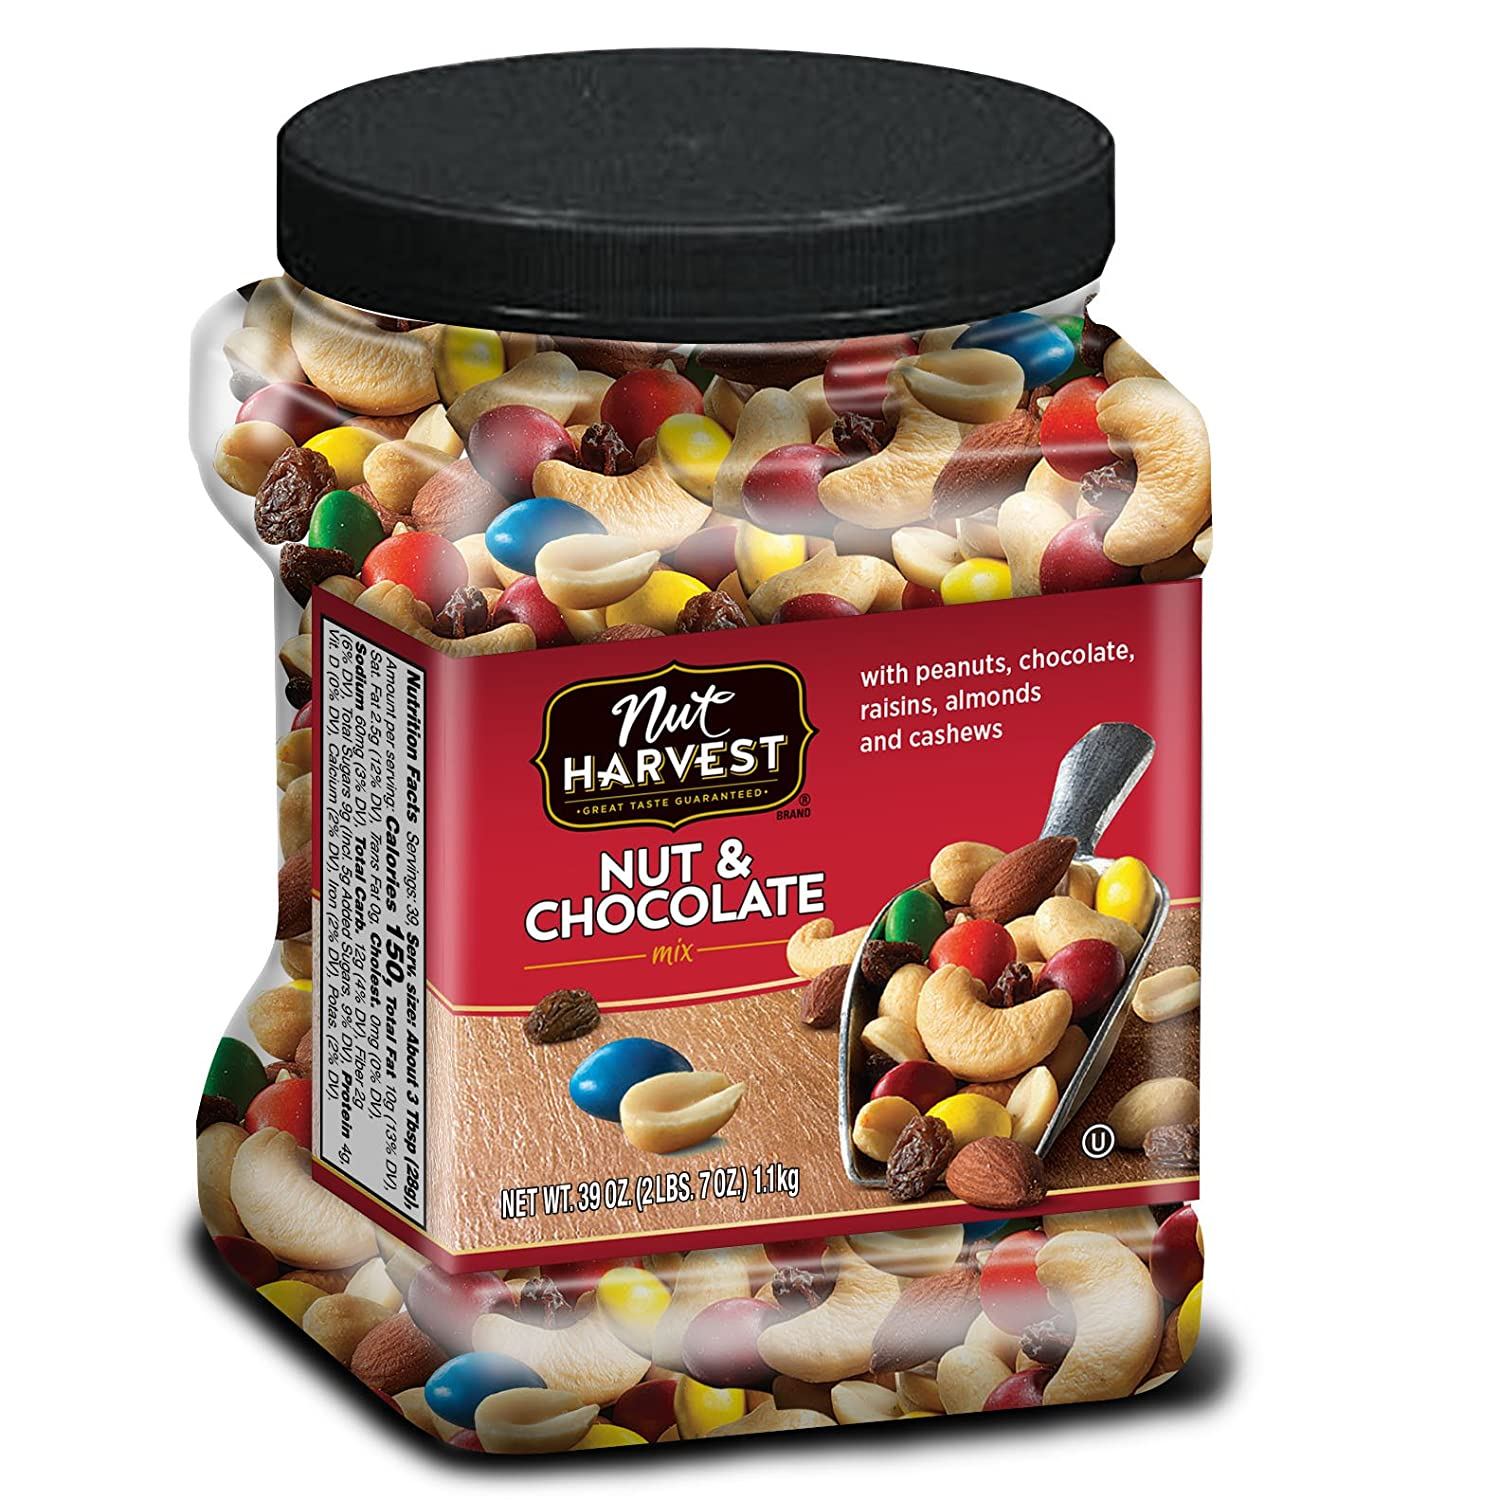 Nut Harvest Nut & Chocolate Mix, 39 Ounce Jar